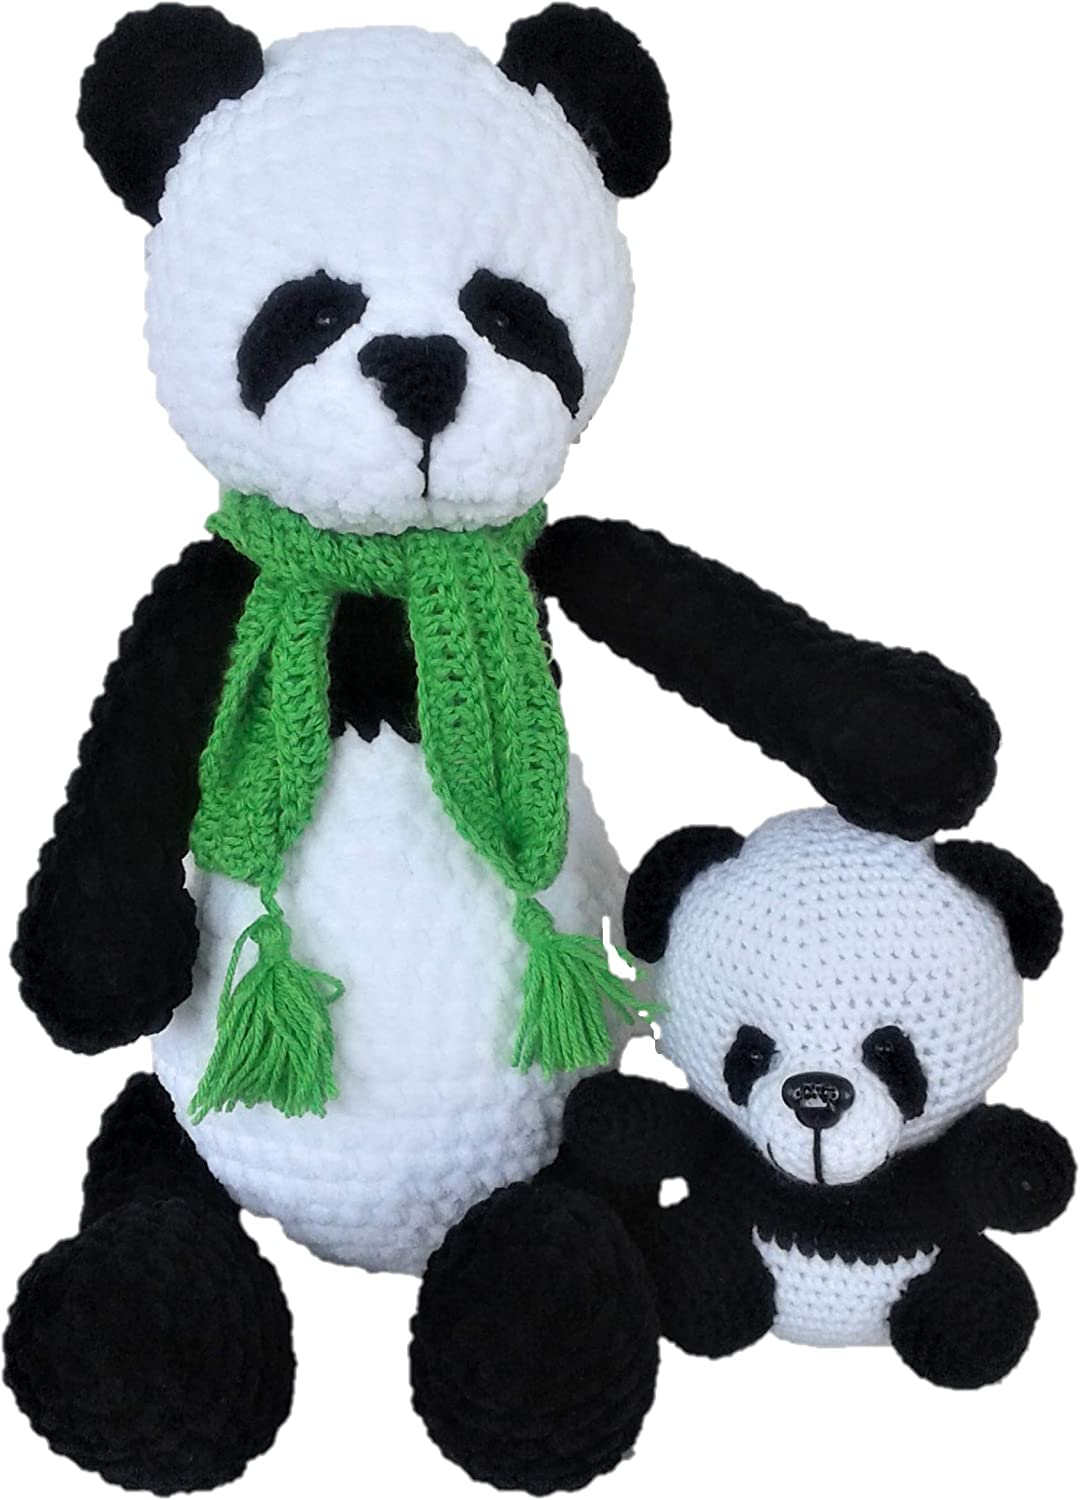 Knitted Toy Amigurumi Hand Knitted Teddy Bear Panda Bear is a Gift to a Child or Friend Teddy Bears. Soft Plush Panda with a Bear